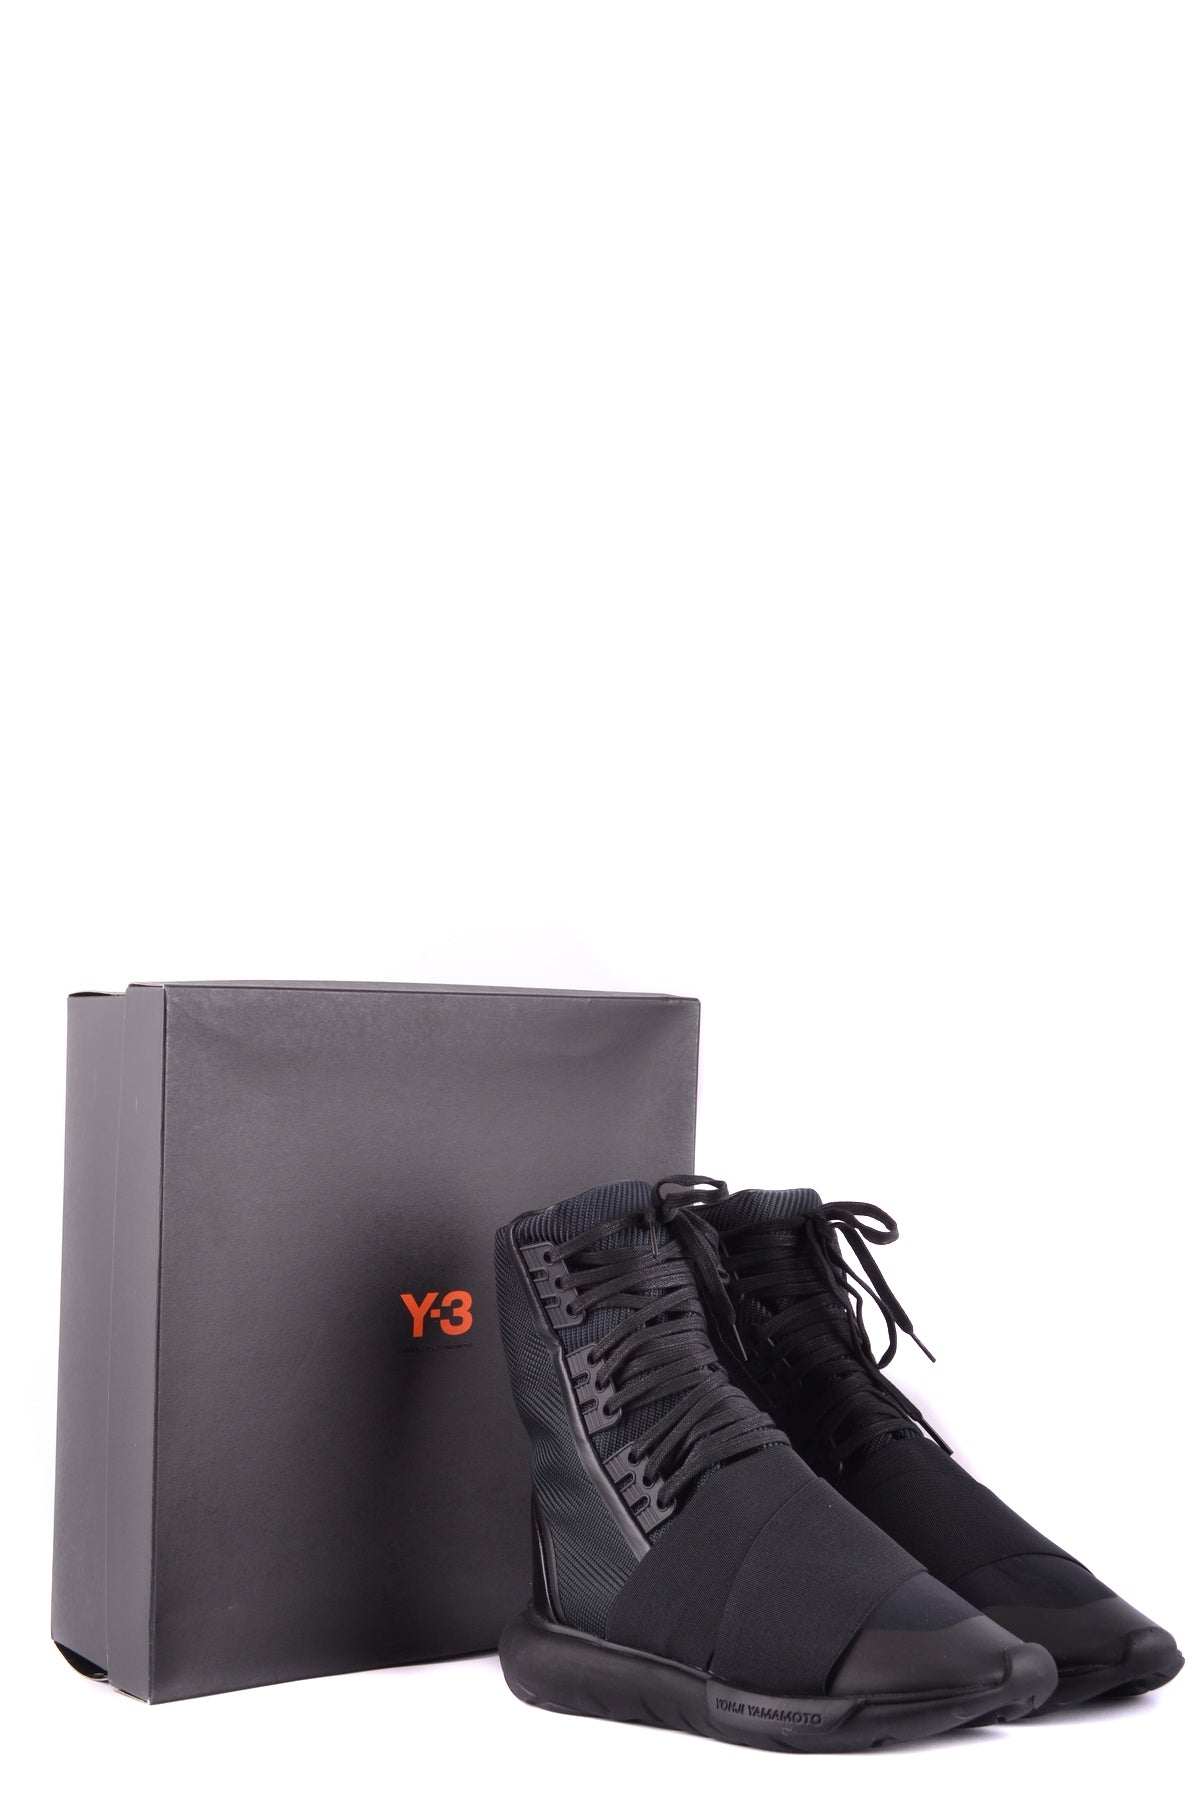 Shoes Y'S Yohji Yamamoto-High-top sneakers - Shoes-Product Details Type Of Accessory: ShoesTerms: New With LabelYear: 2017Main Color: BlackSeason: Fall / WinterMade In: ChinaSize: UkGender: ManComposition: Nylon 100%-Keyomi-Sook